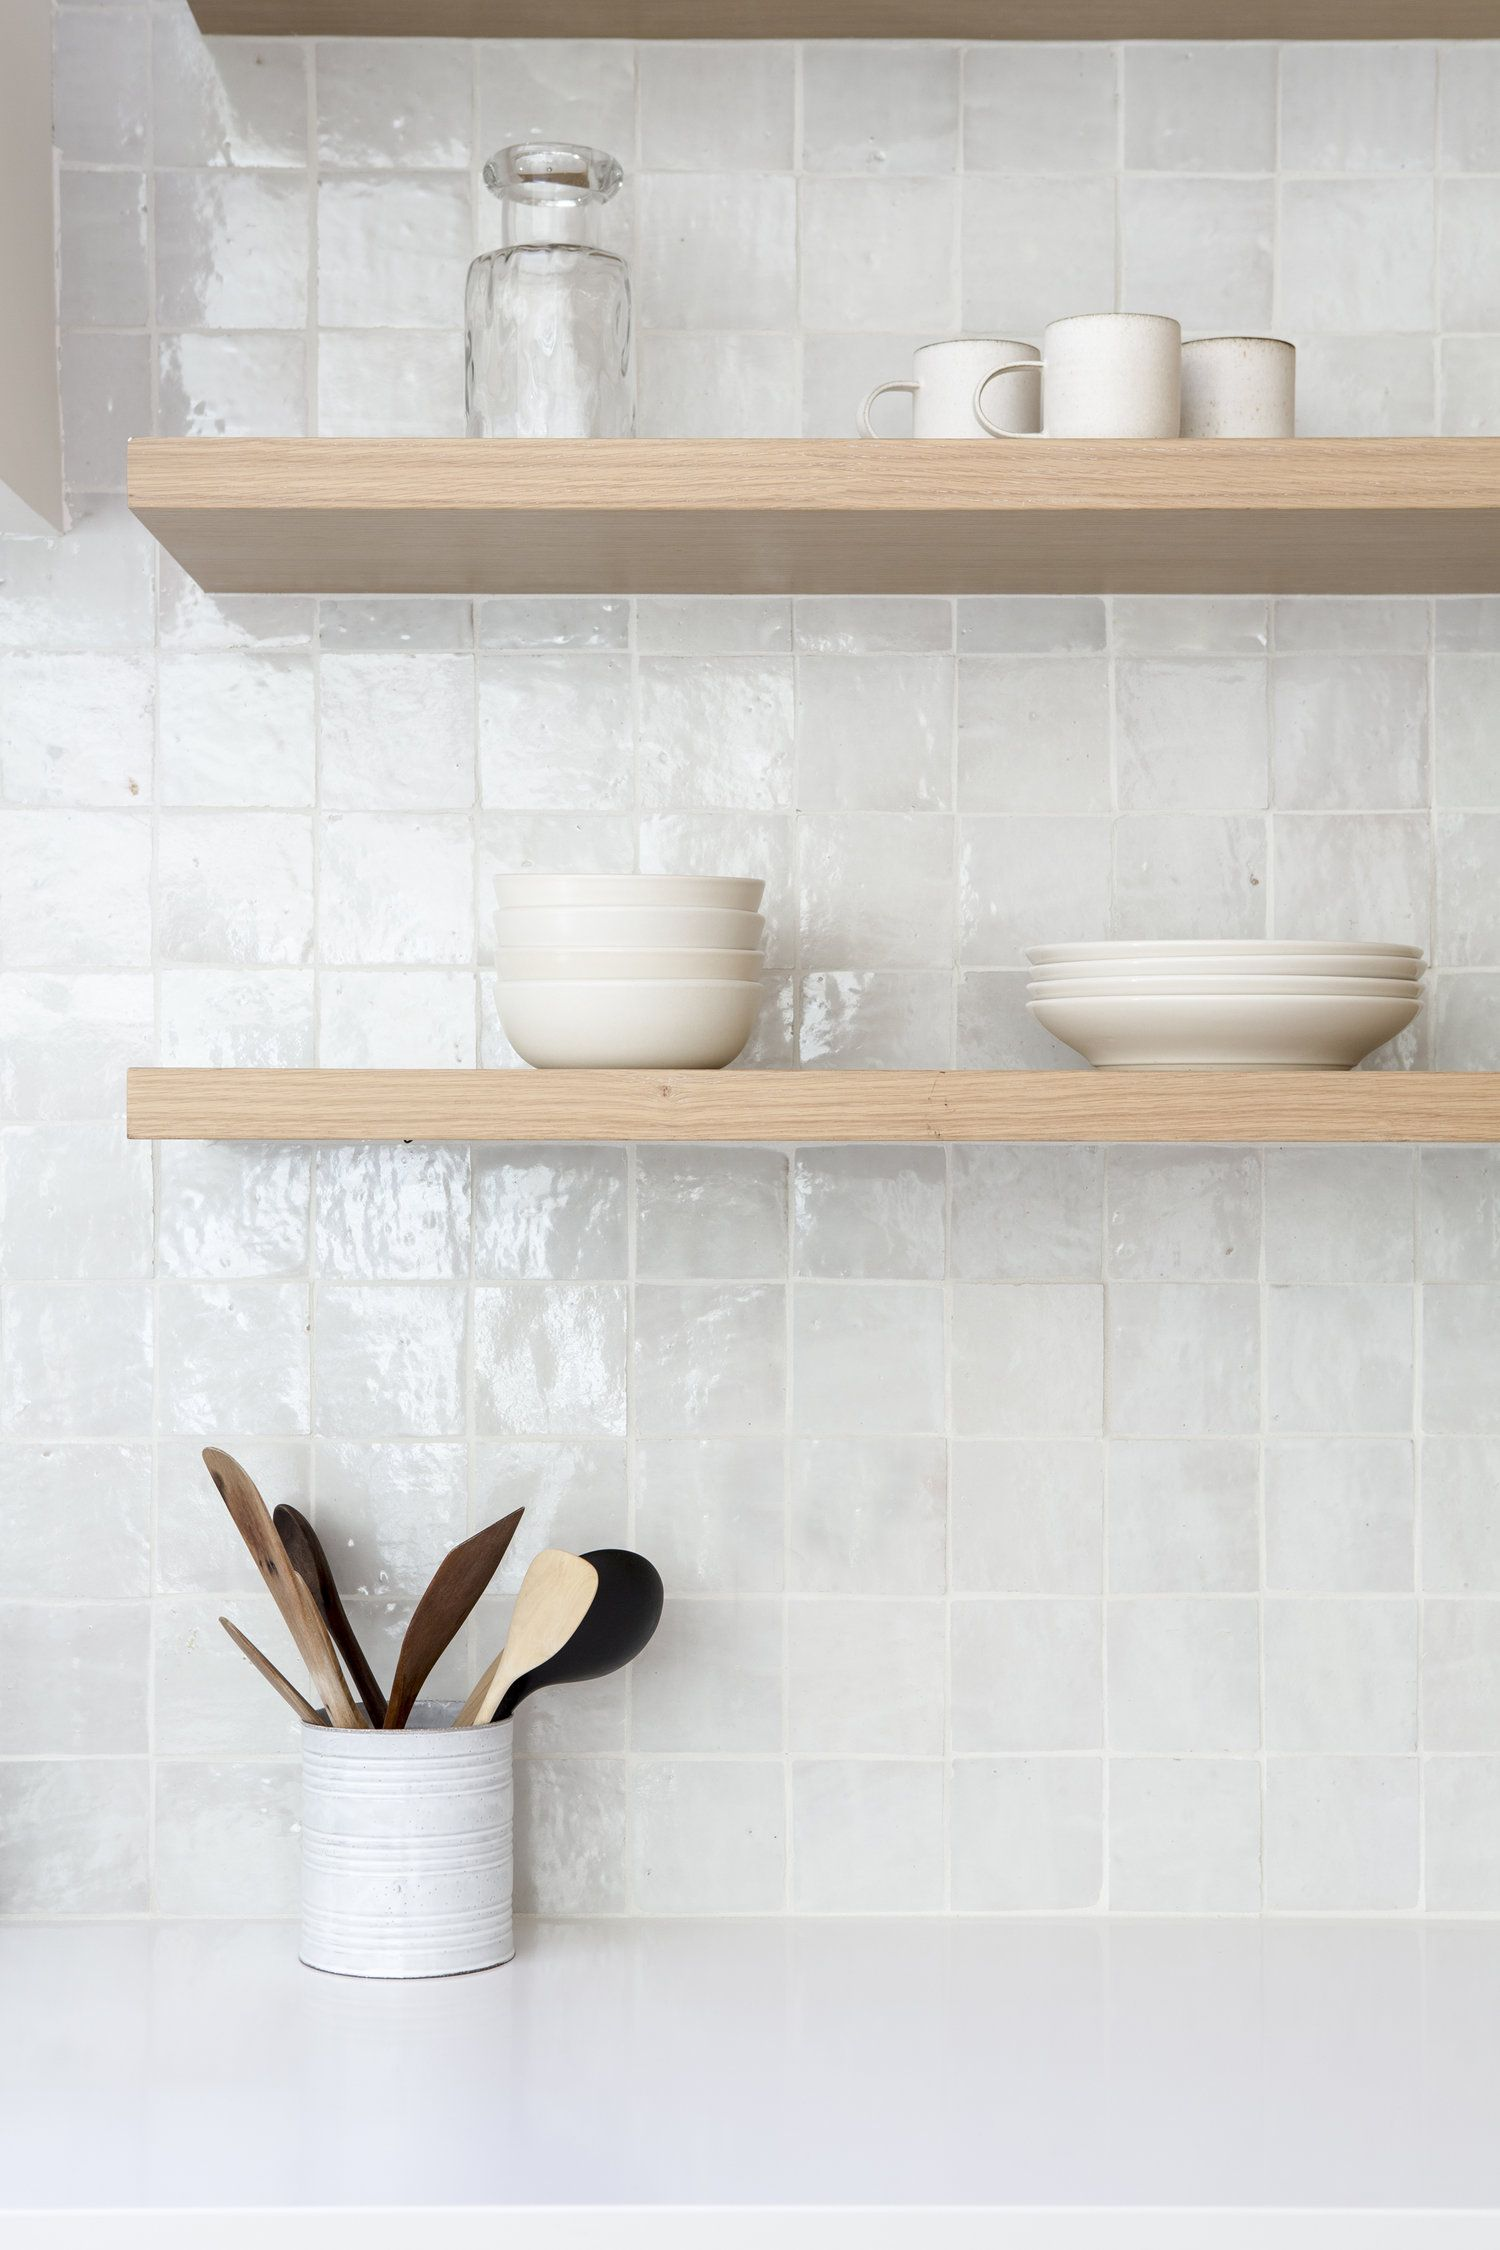 These Walnut Floating Shelves Are Stunning The Backsplash Has A